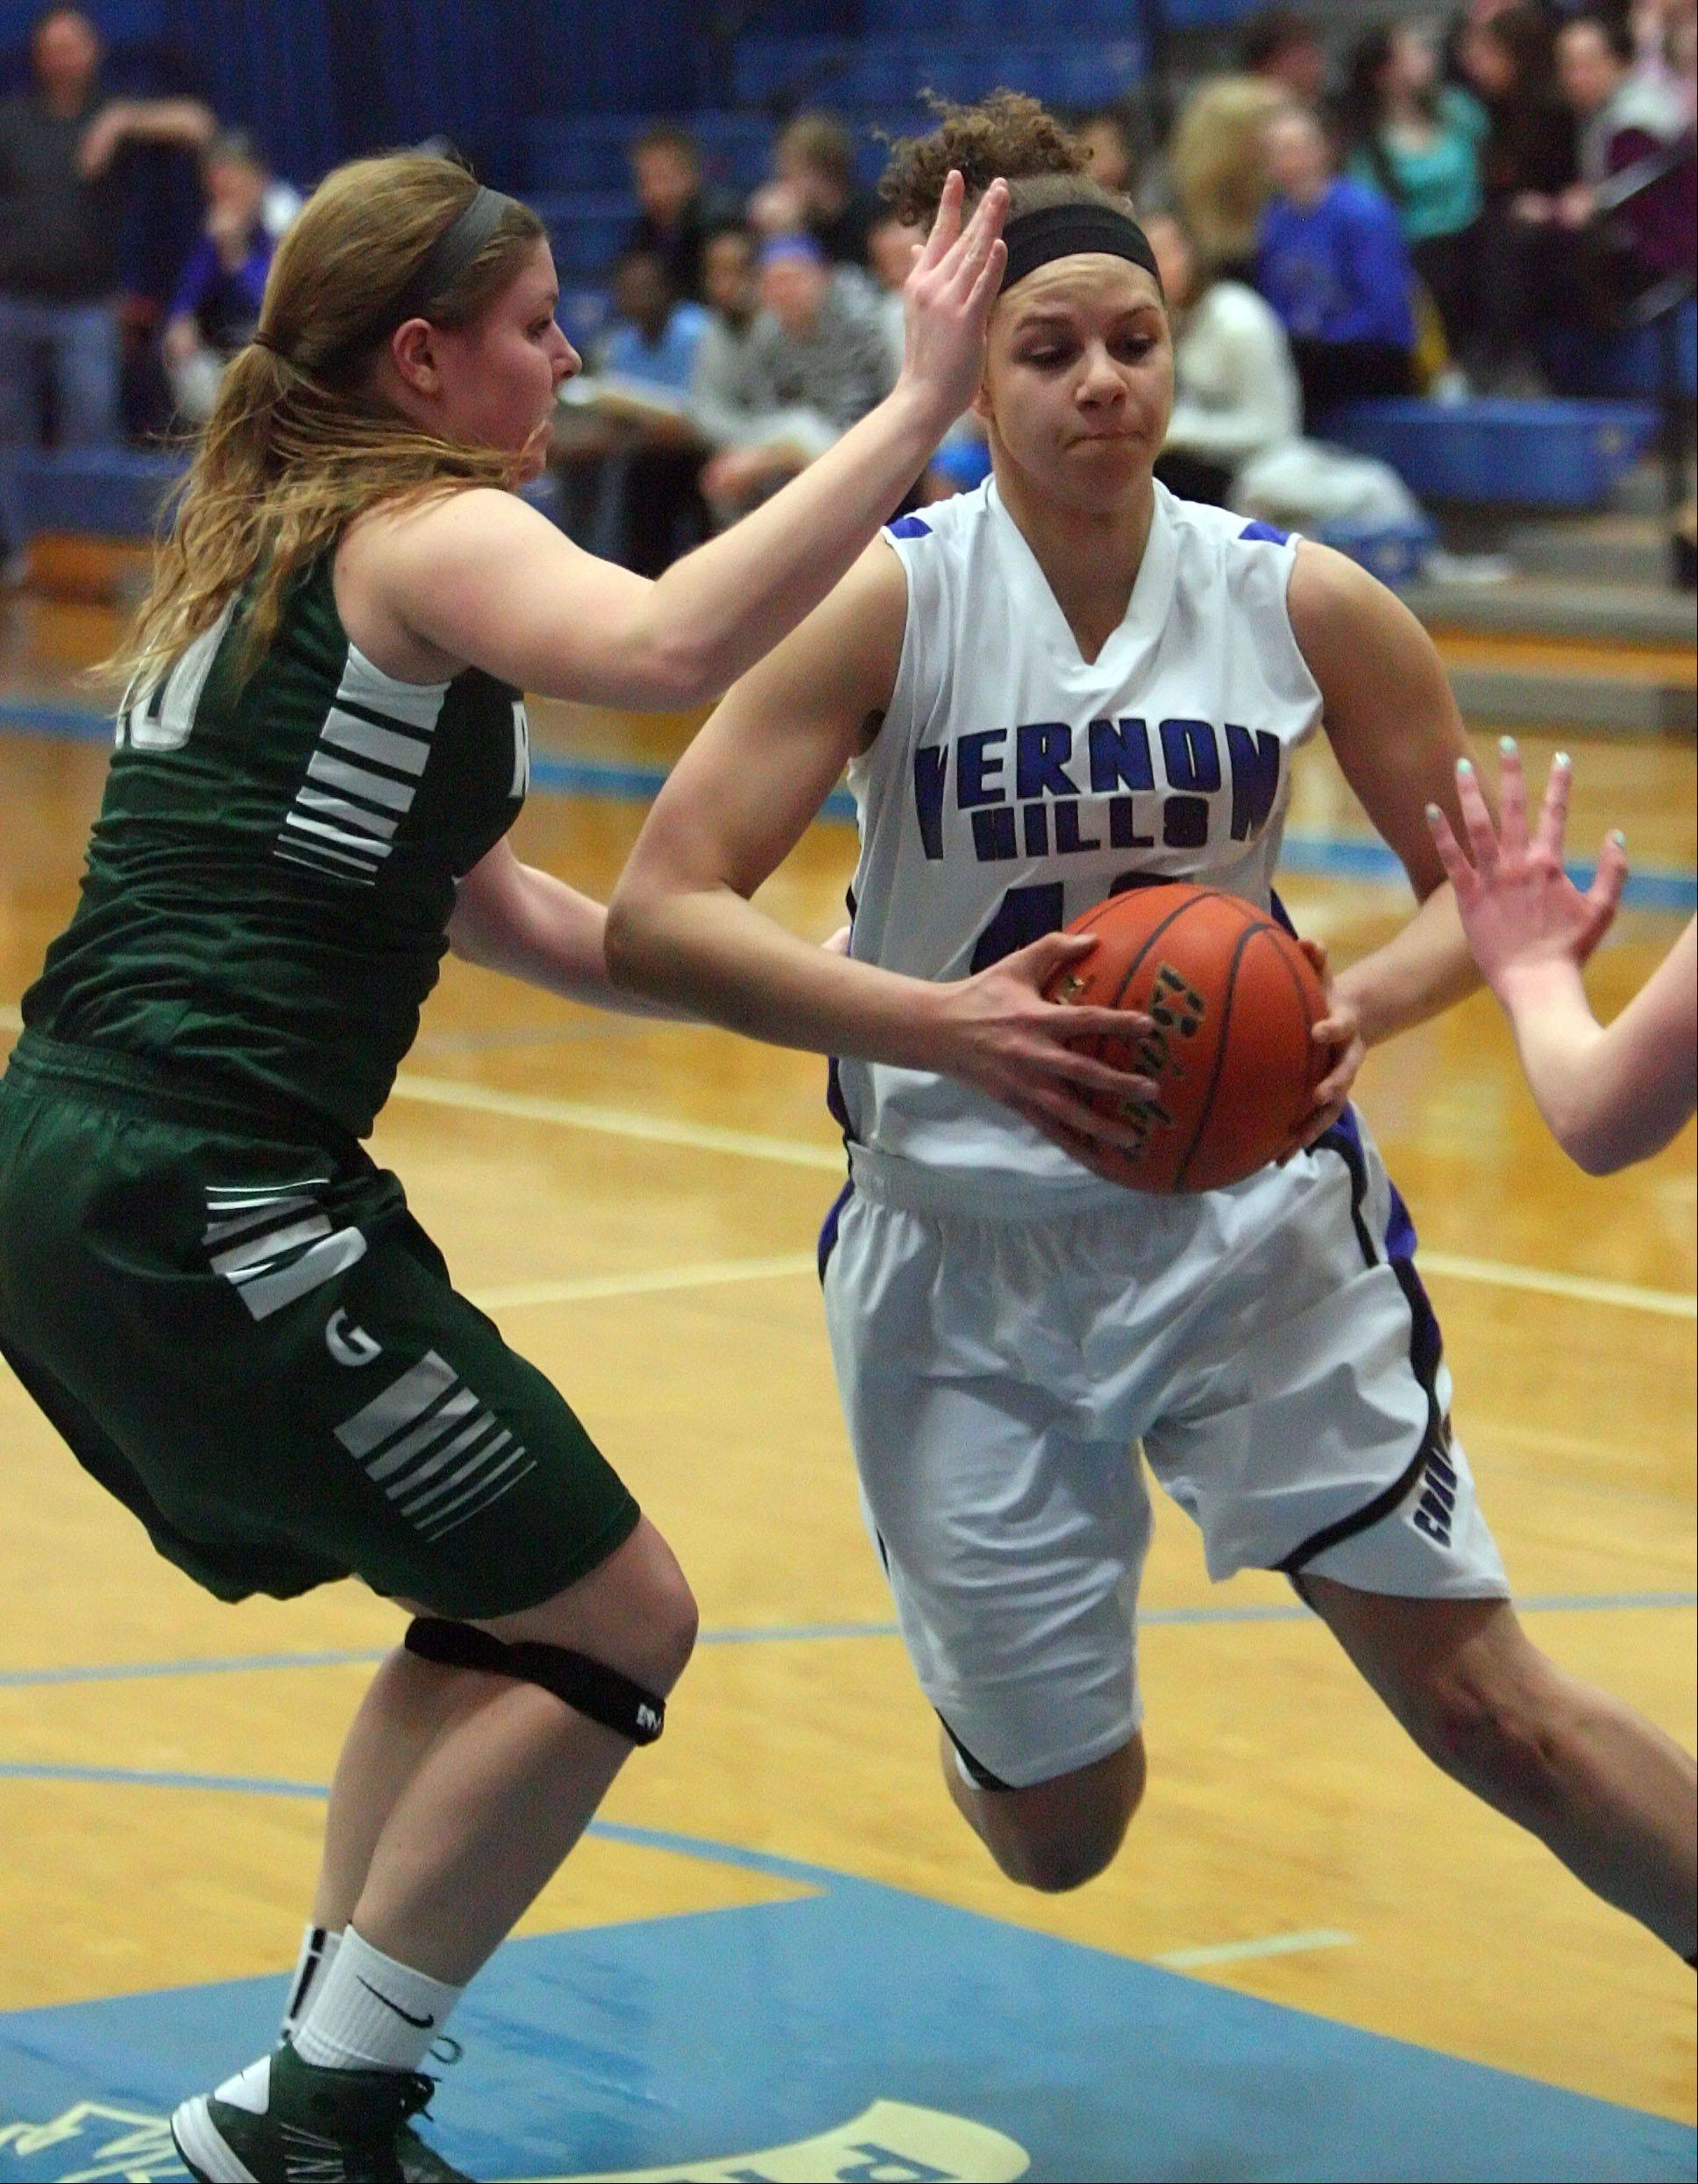 Vernon Hills' Lauren Webb, right, drives on Grayslake Central's Maddy Miller.